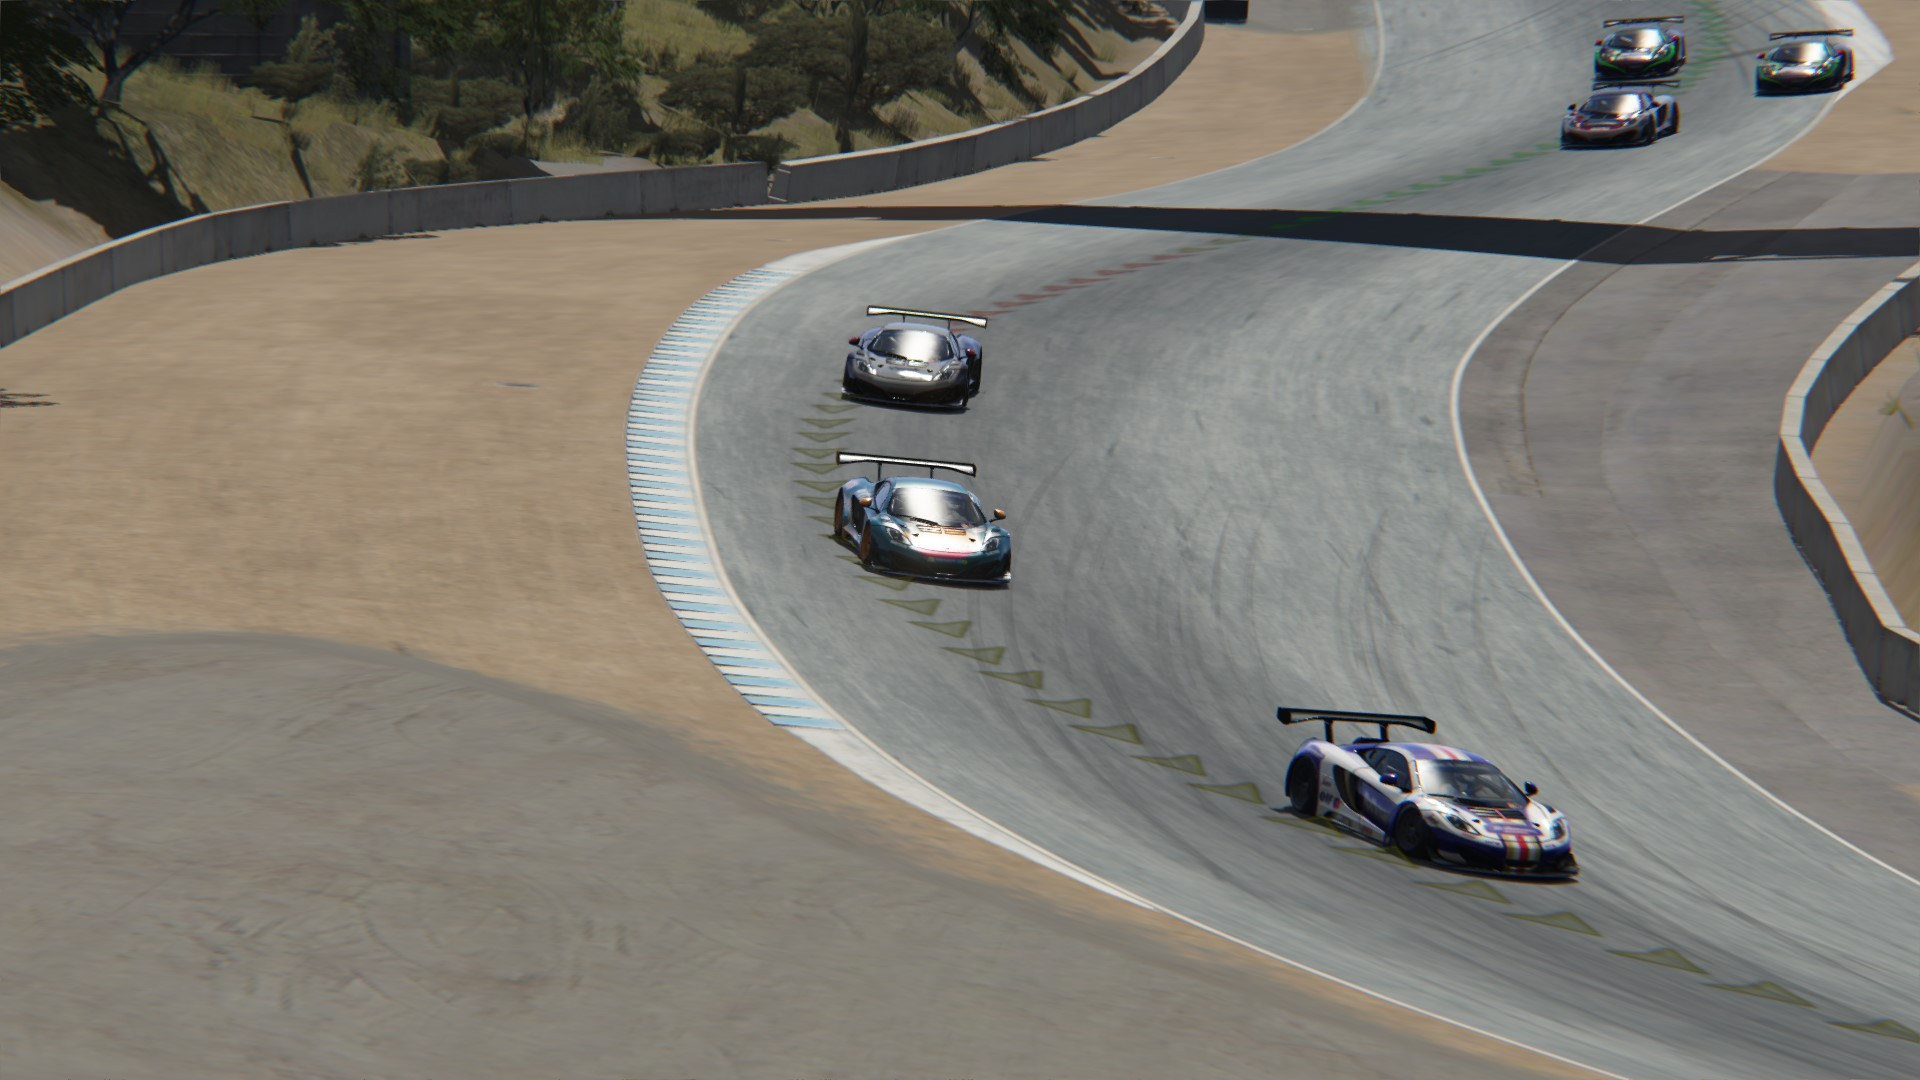 Screenshot_mclaren_mp412c_gt3_ks_laguna_seca_23-12-117-15-22-44.jpg